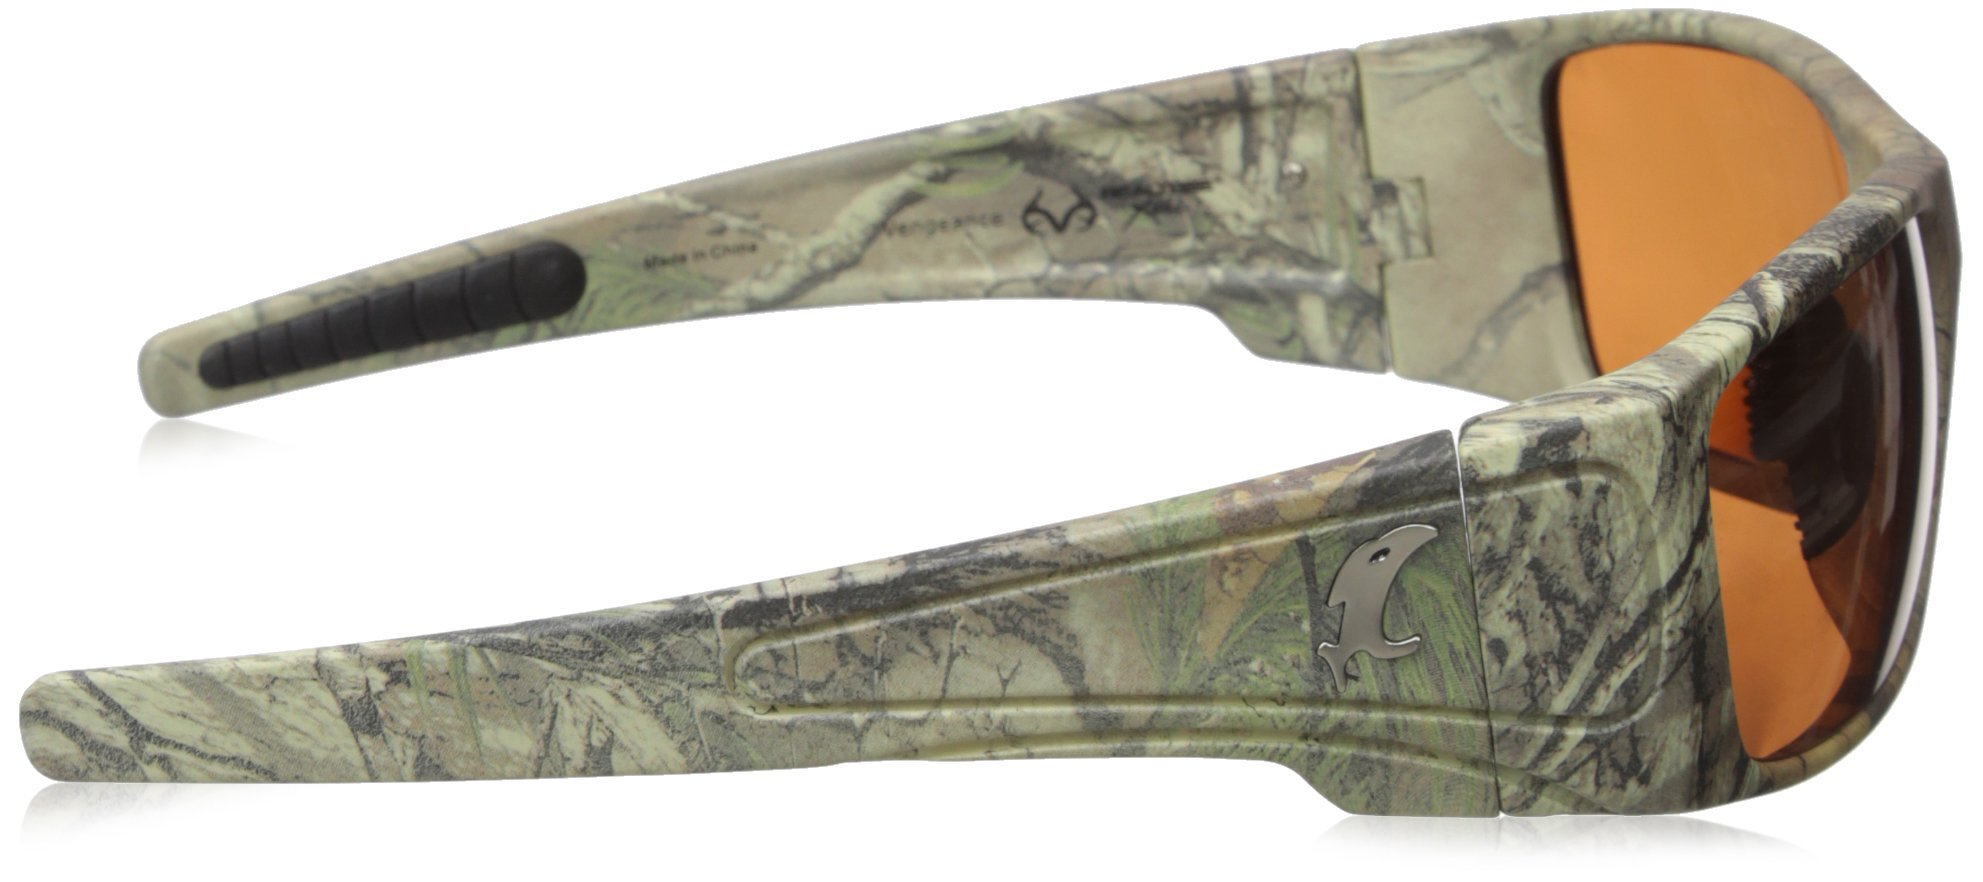 Vicious Vision Vengeance Pro Series Copper Lens Sunglasses, Realtree Xtra by Vicious Vision (Image #3)